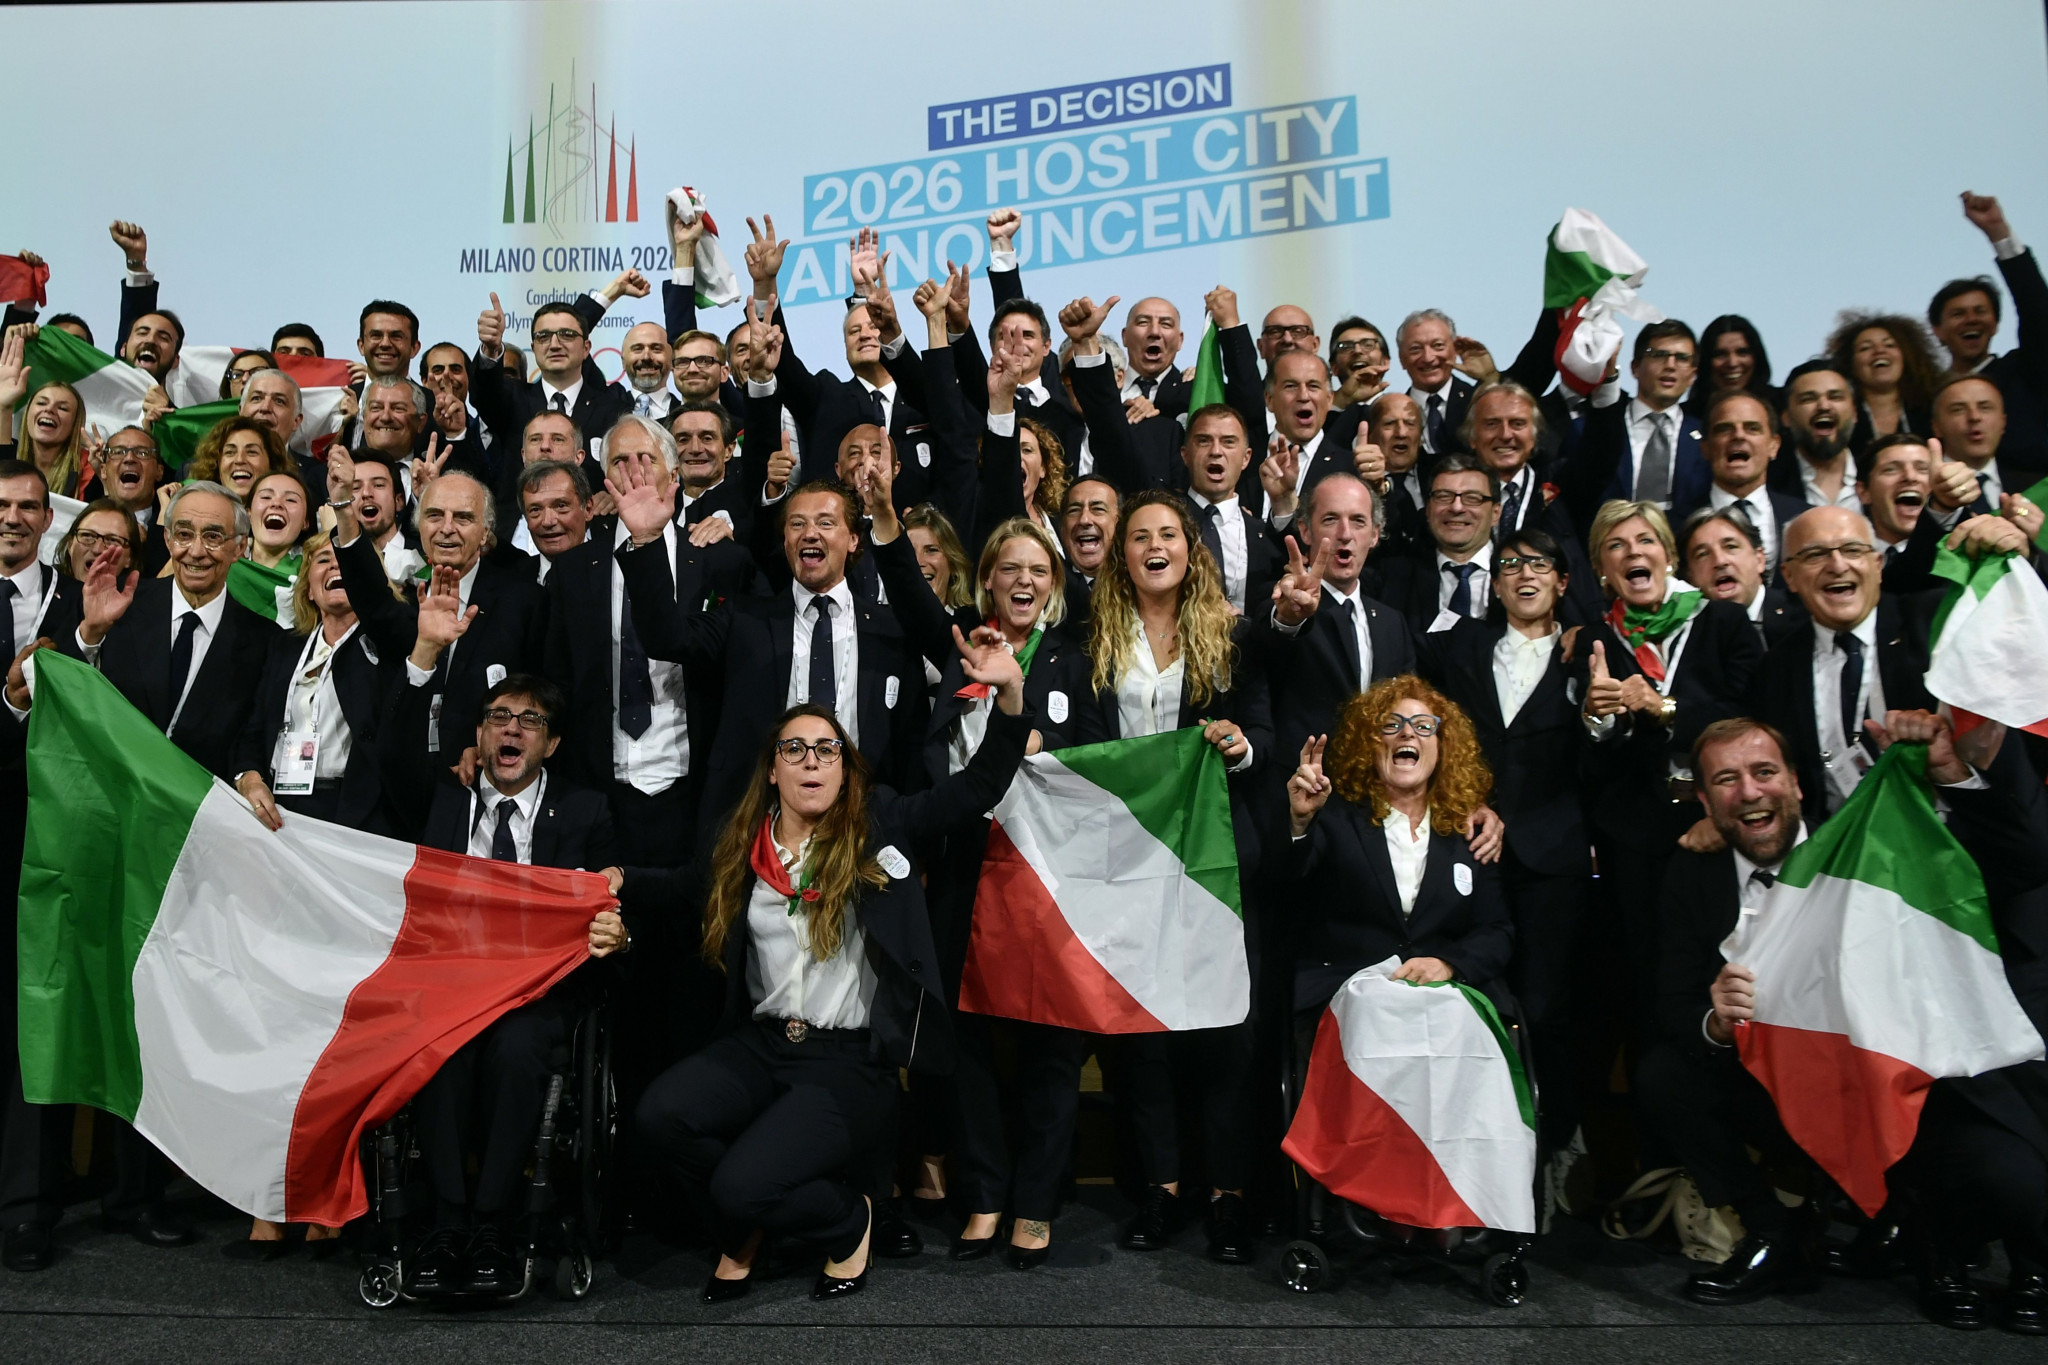 Milan Cortina 2026 signs deal to boost local business and tourism